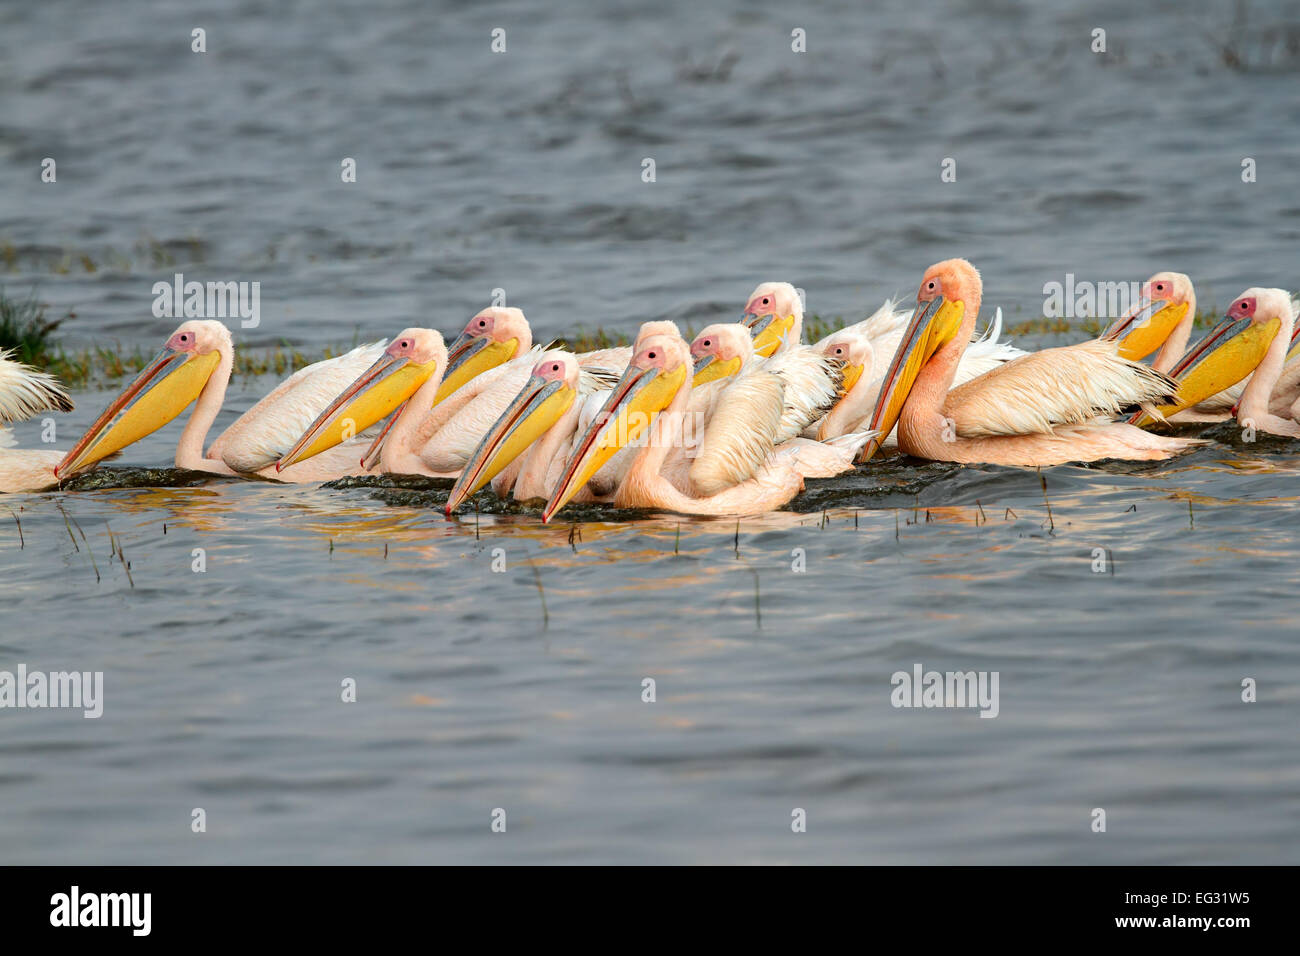 Great white pelicans (Pelecanus onocrotalus) swimming, Lake Nakuru National Park, Kenya - Stock Image